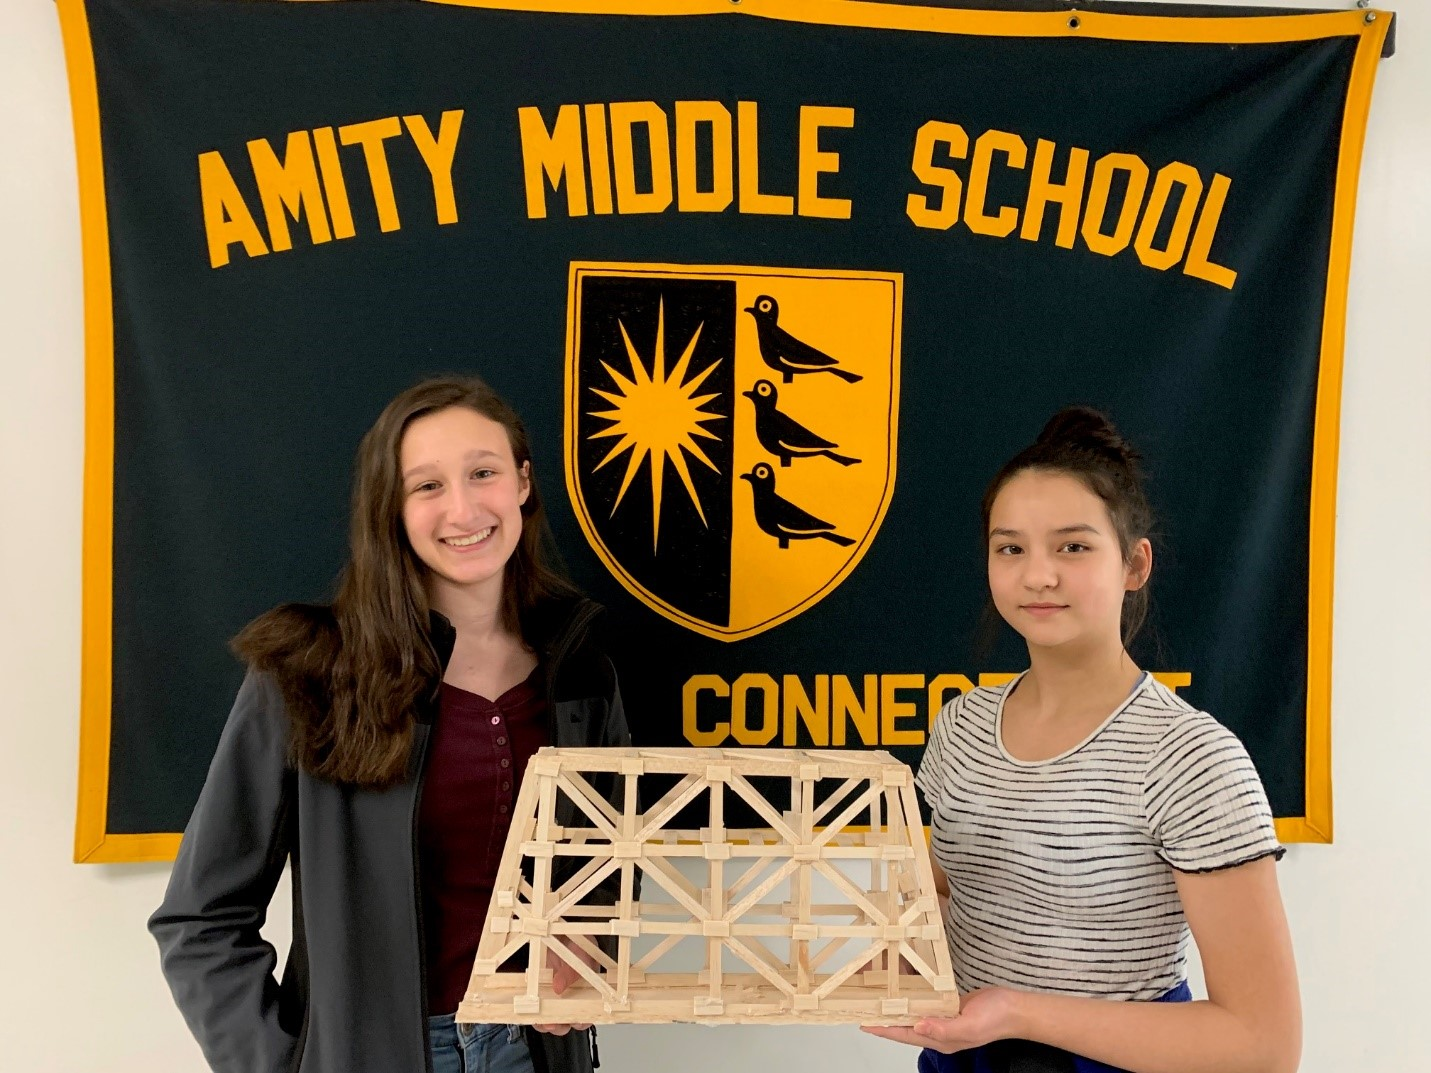 STUDENTS AT AMSB BREAK SCHOOL RECORD